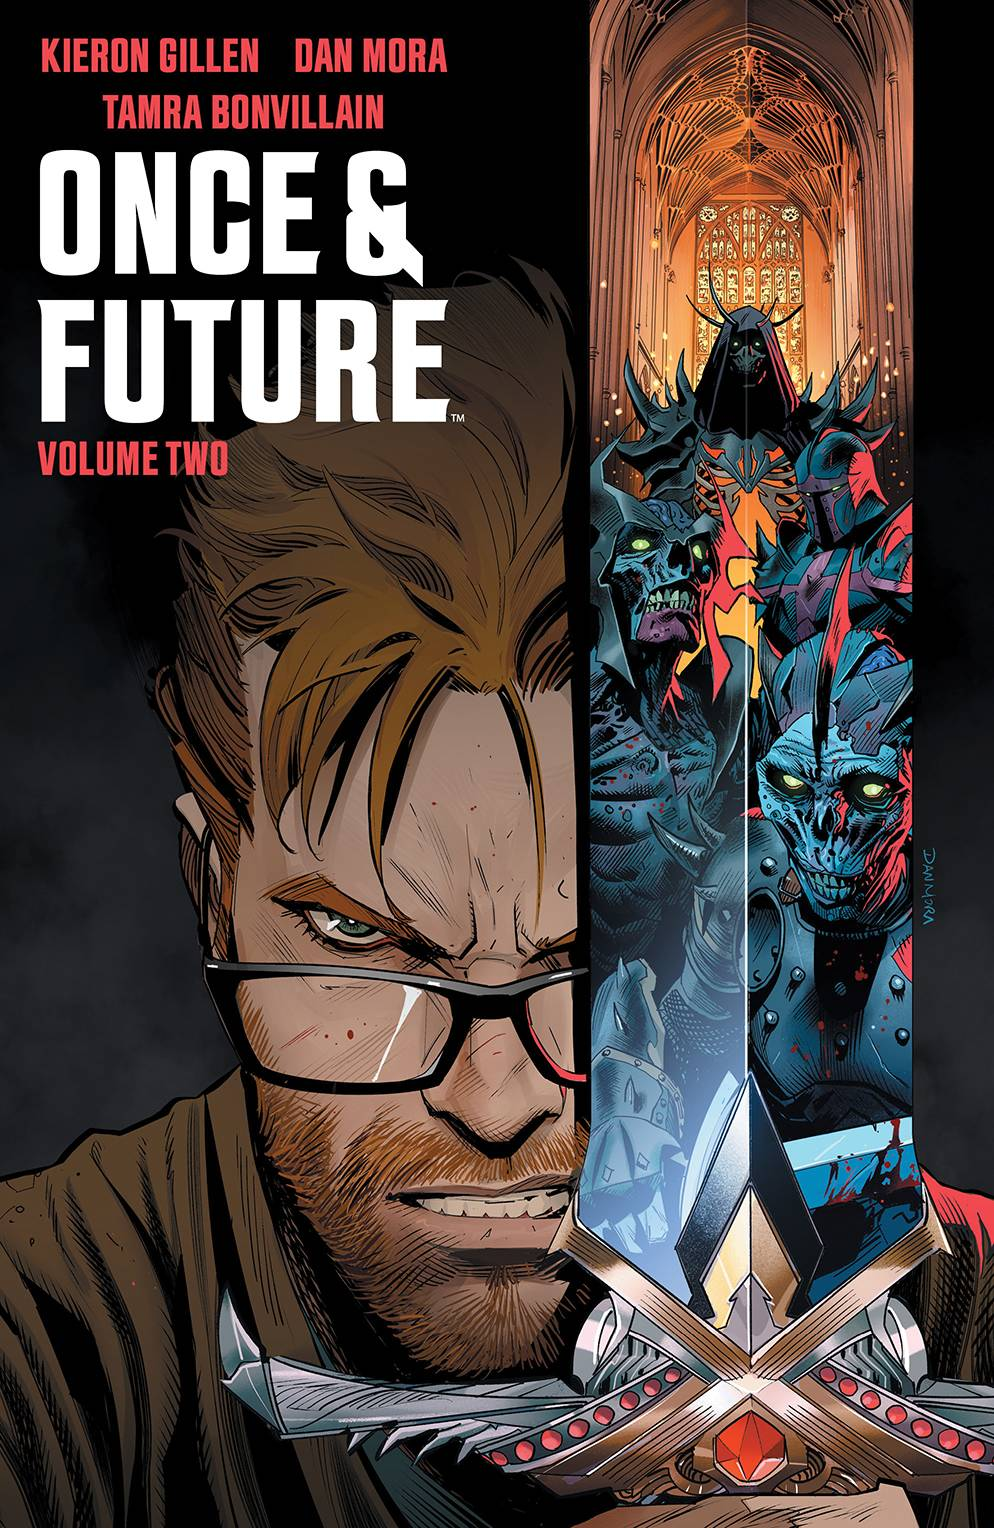 ONCE & FUTURE TP VOL 02 (C: 0-1-2)